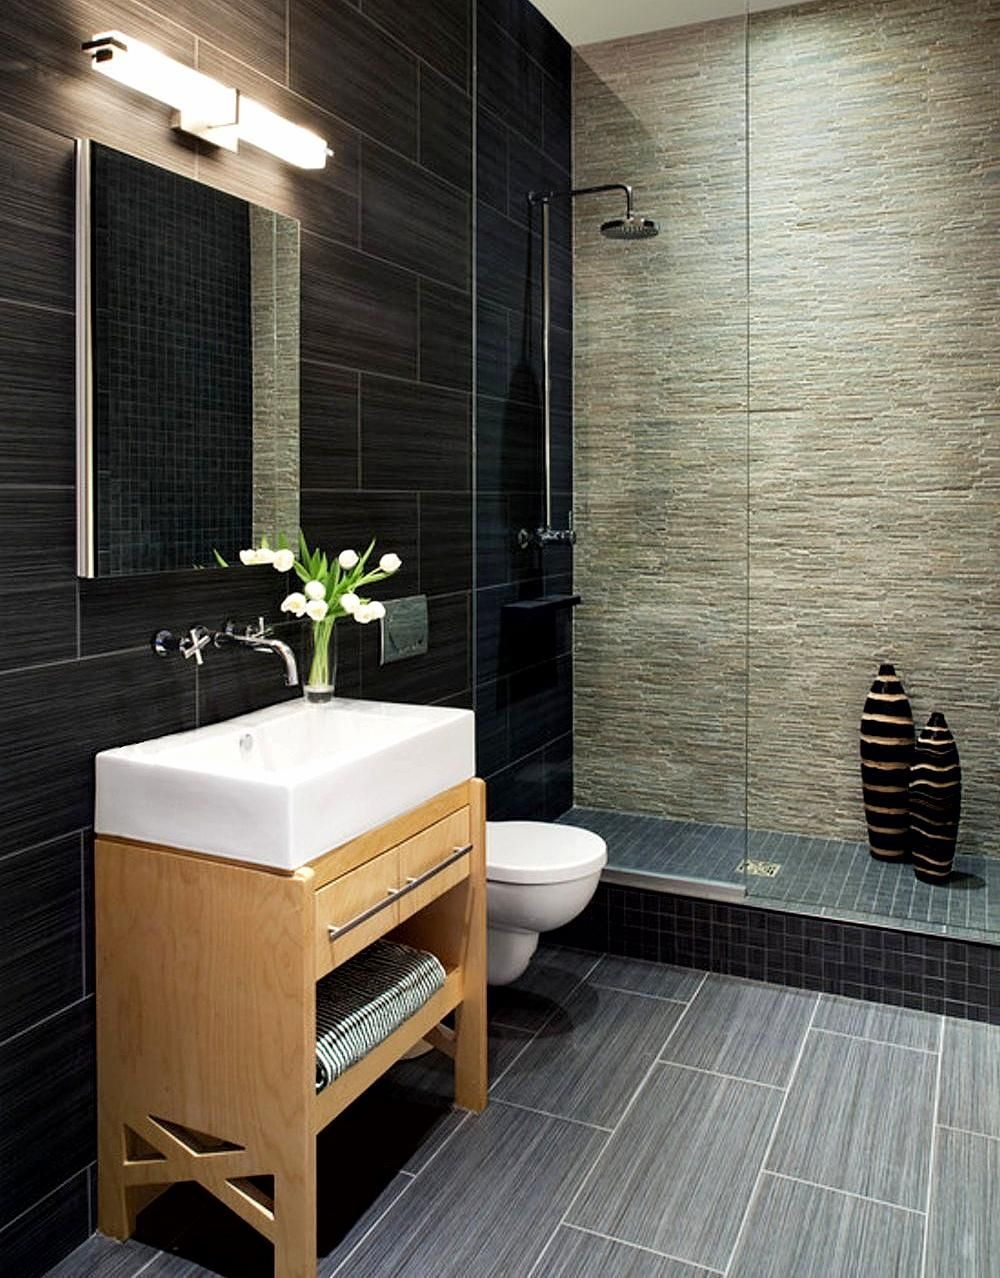 High Tech Style Has In General As A Main Feature The Artificial Industrial Or Mec Small Bathroom Remodel Bathroom Design Small Contemporary Bathroom Designs Bathroom renovation melbourne fl